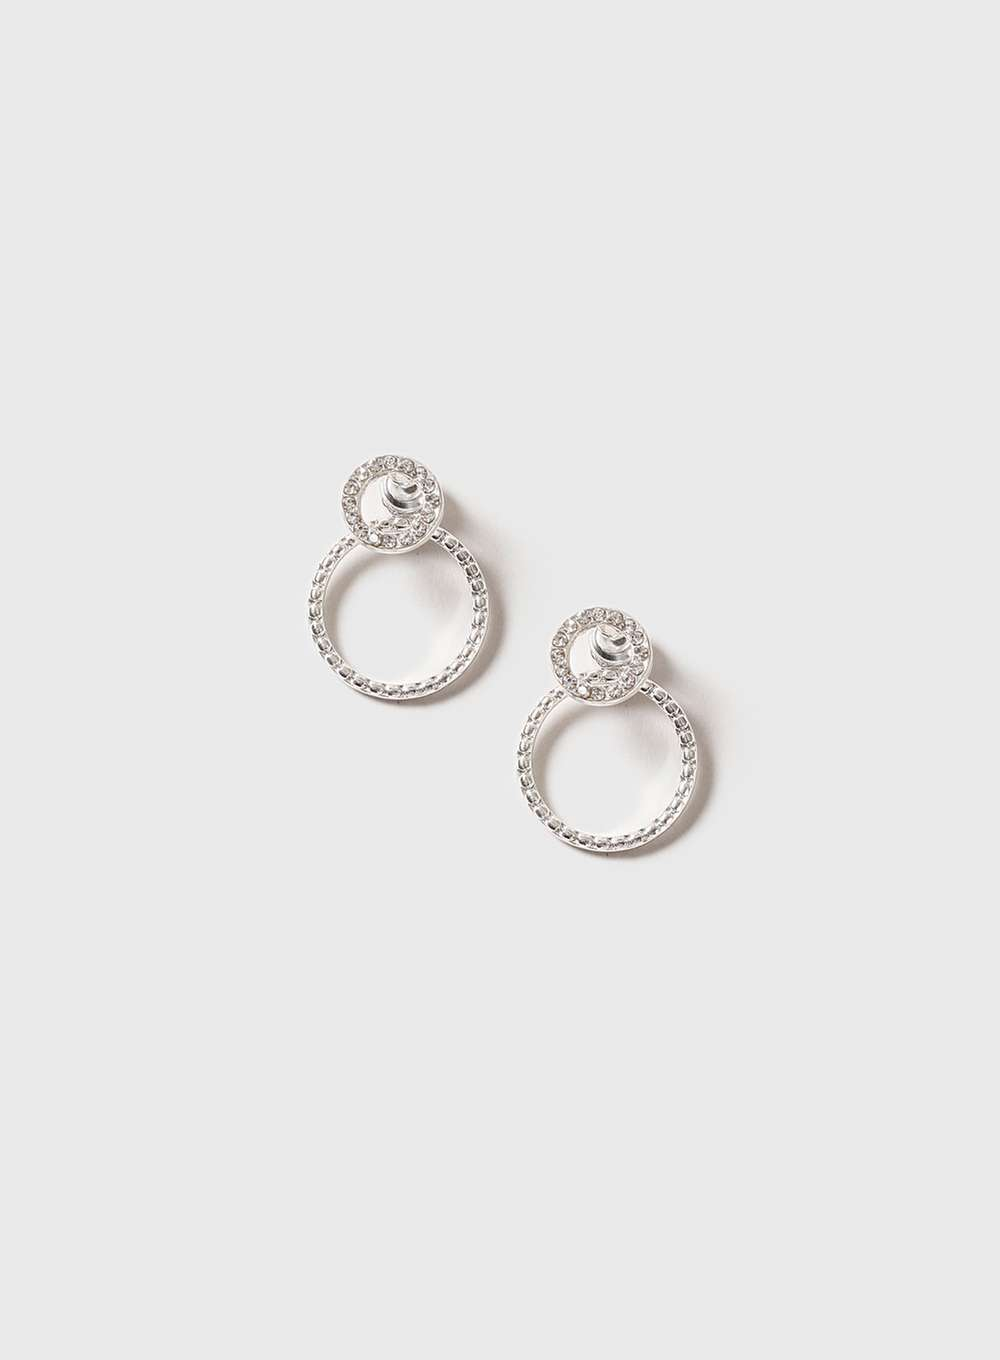 Womens Silver Front And Back Earrings Clear - predominant colour: silver; occasions: evening, occasion; style: hoop; length: mid; size: standard; material: chain/metal; fastening: pierced; finish: metallic; embellishment: crystals/glass; season: a/w 2016; wardrobe: event